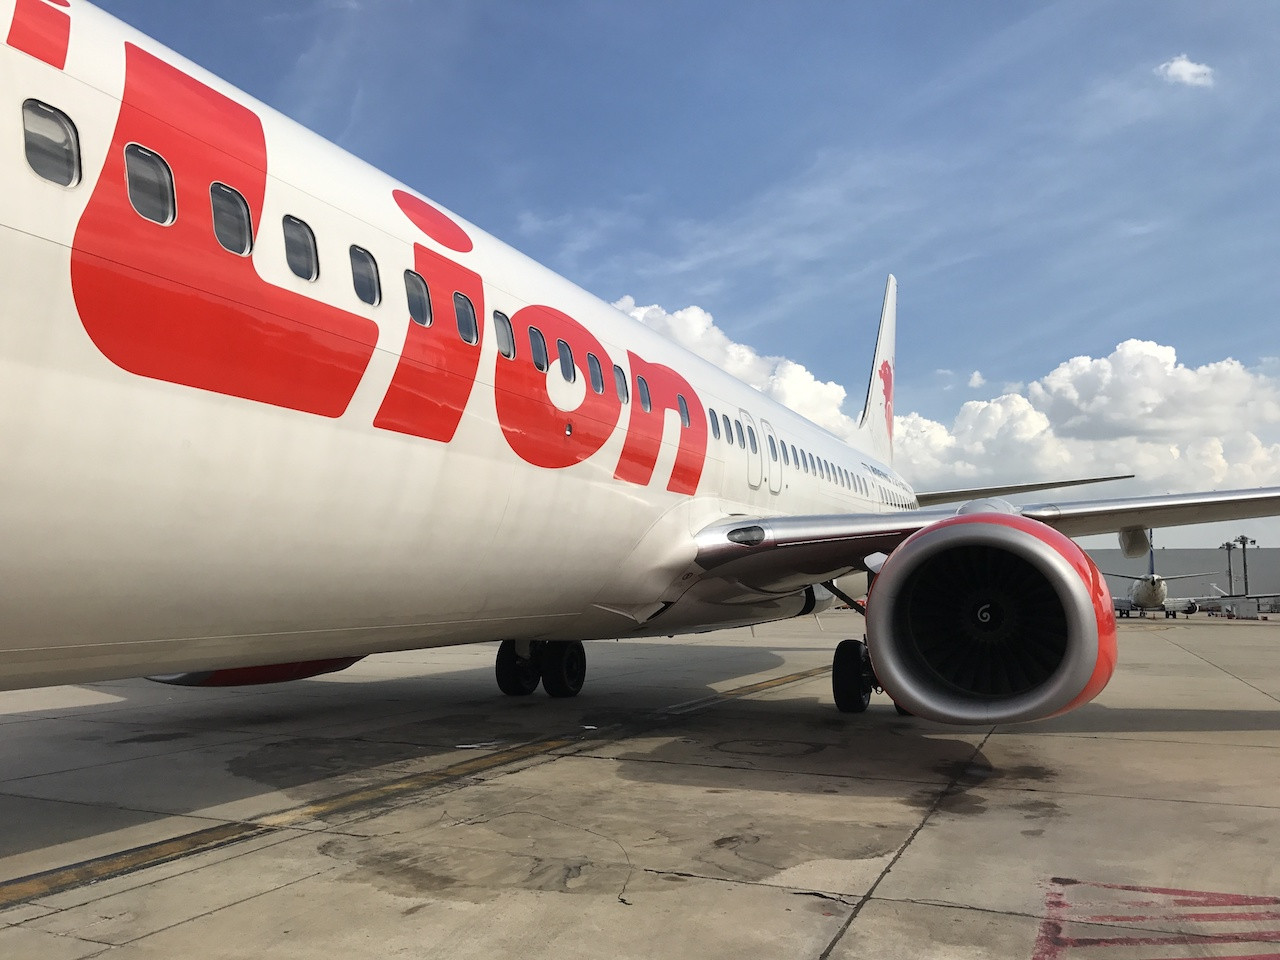 Lion Air offers discounts to rev up business amid virus fears